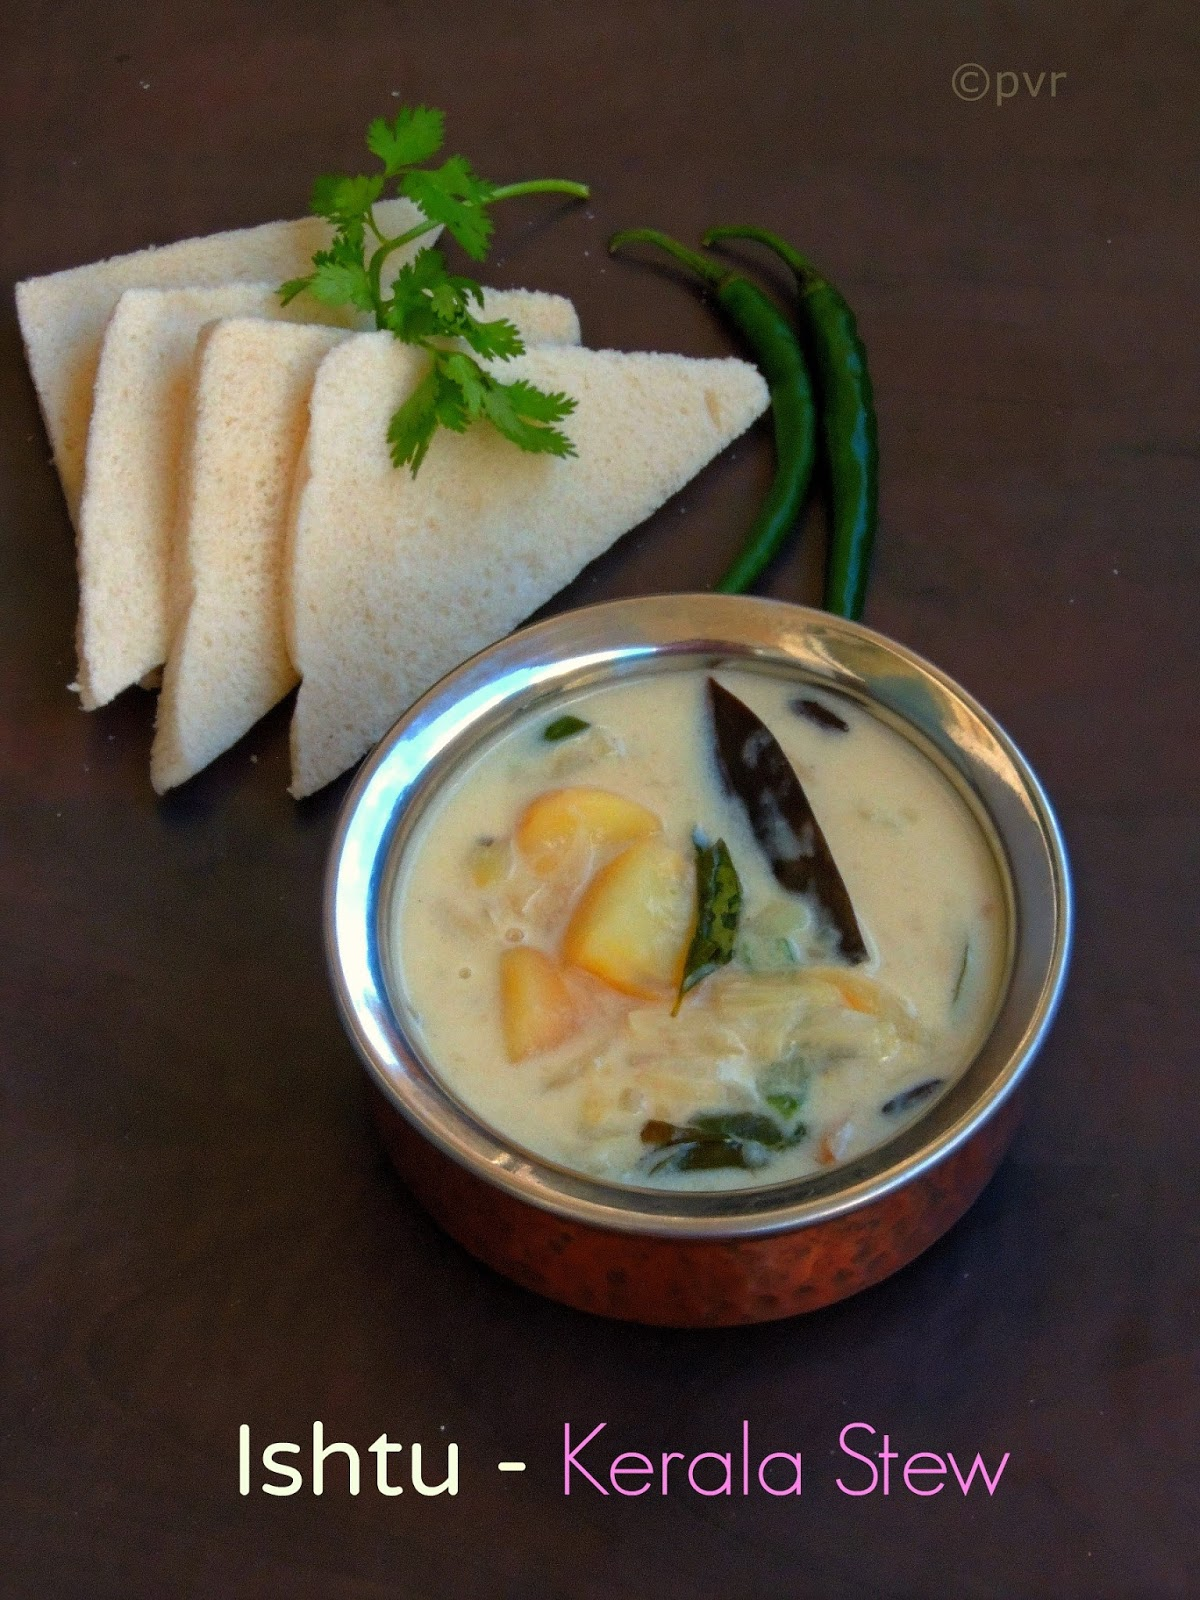 ... milk coconut milk sweet potatoes simmered in spices and coconut milk